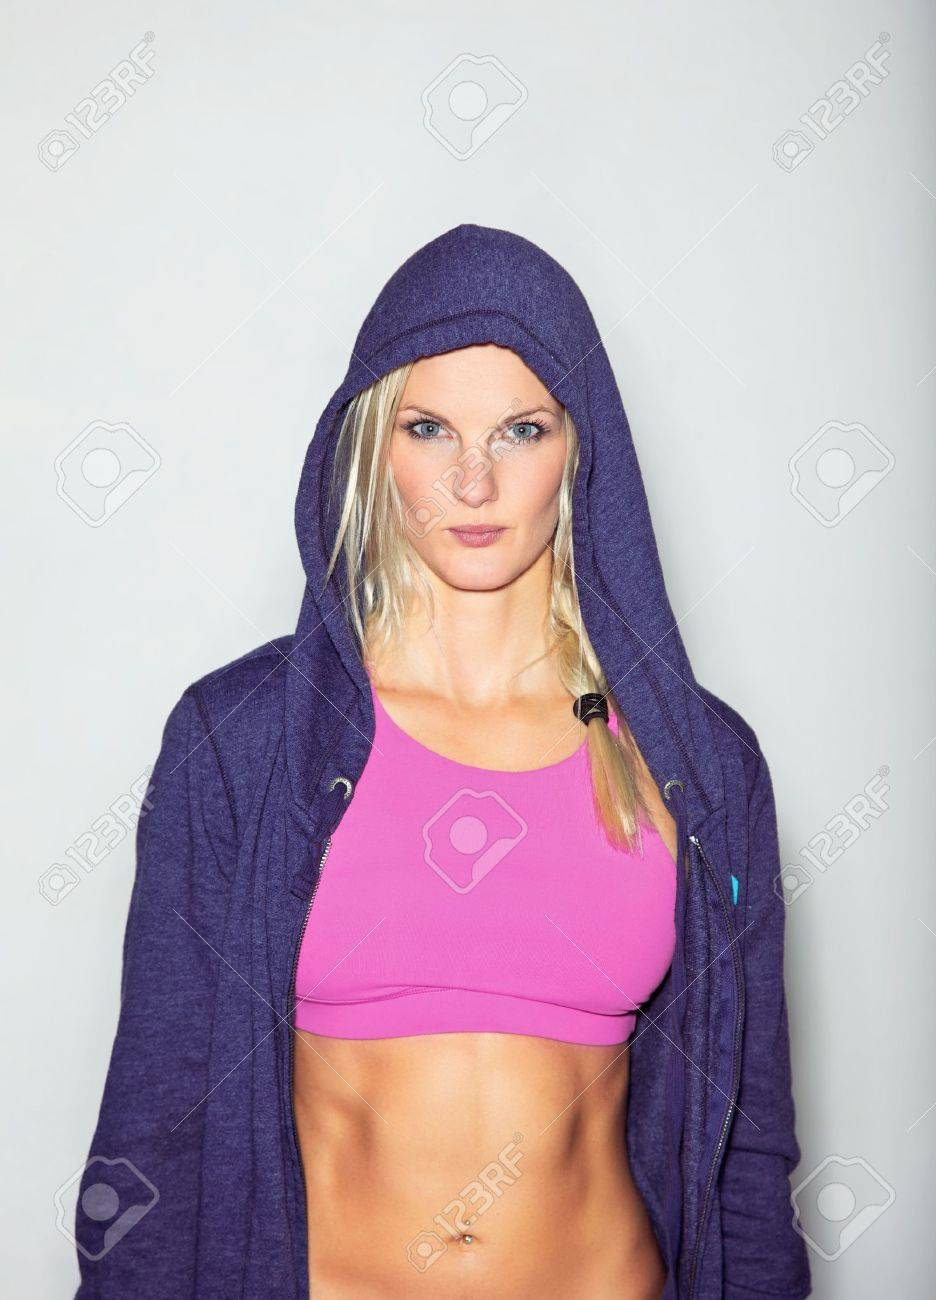 Confident woman in sportswear posing for camera against white background Stock Photo - 15865250